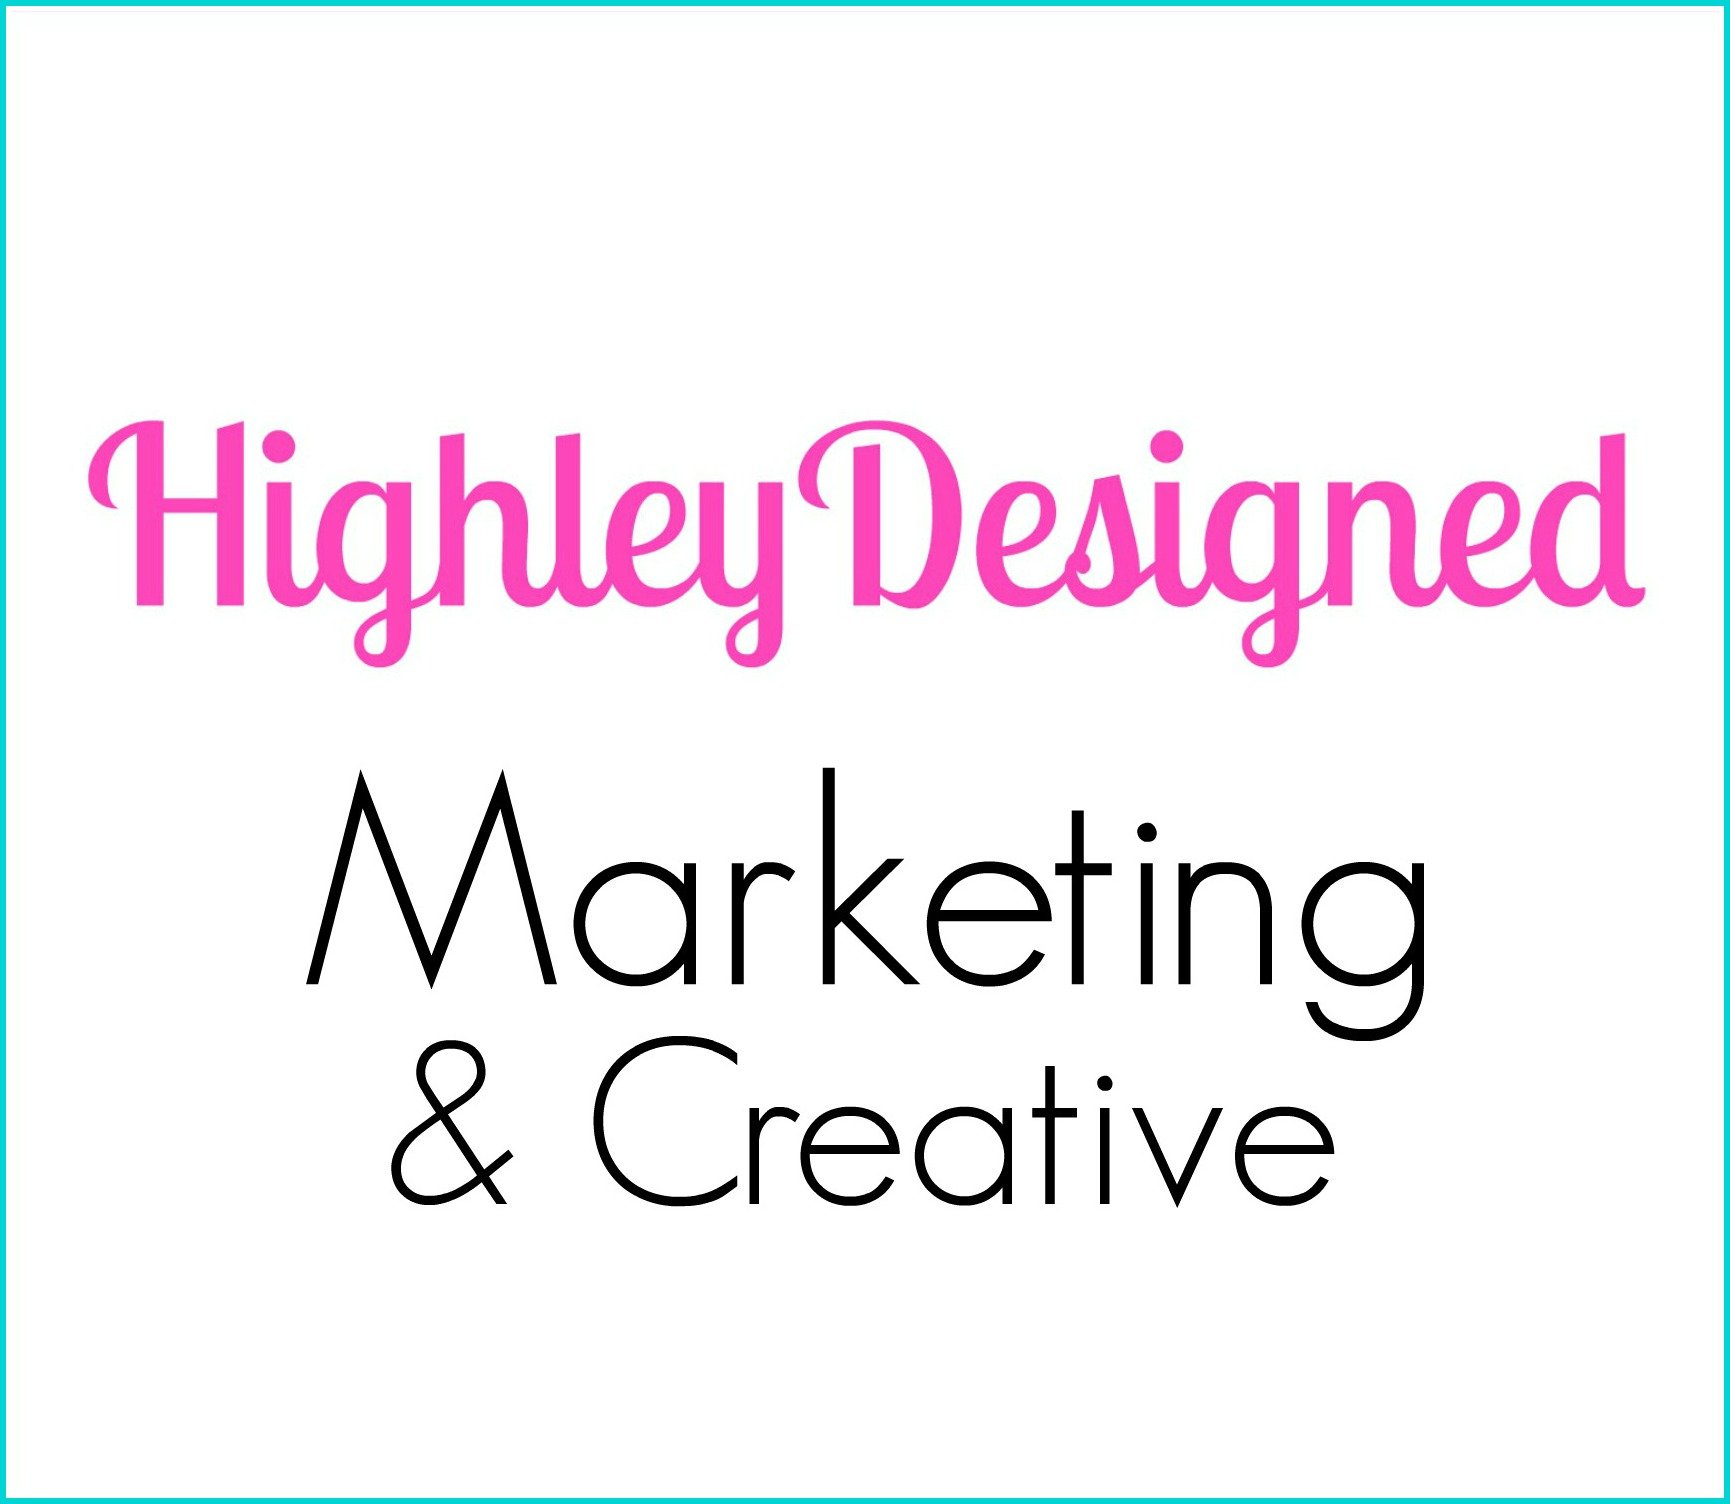 HD Marketing & Creative Offers Social Media Marketing and Web Design for Small Businesses